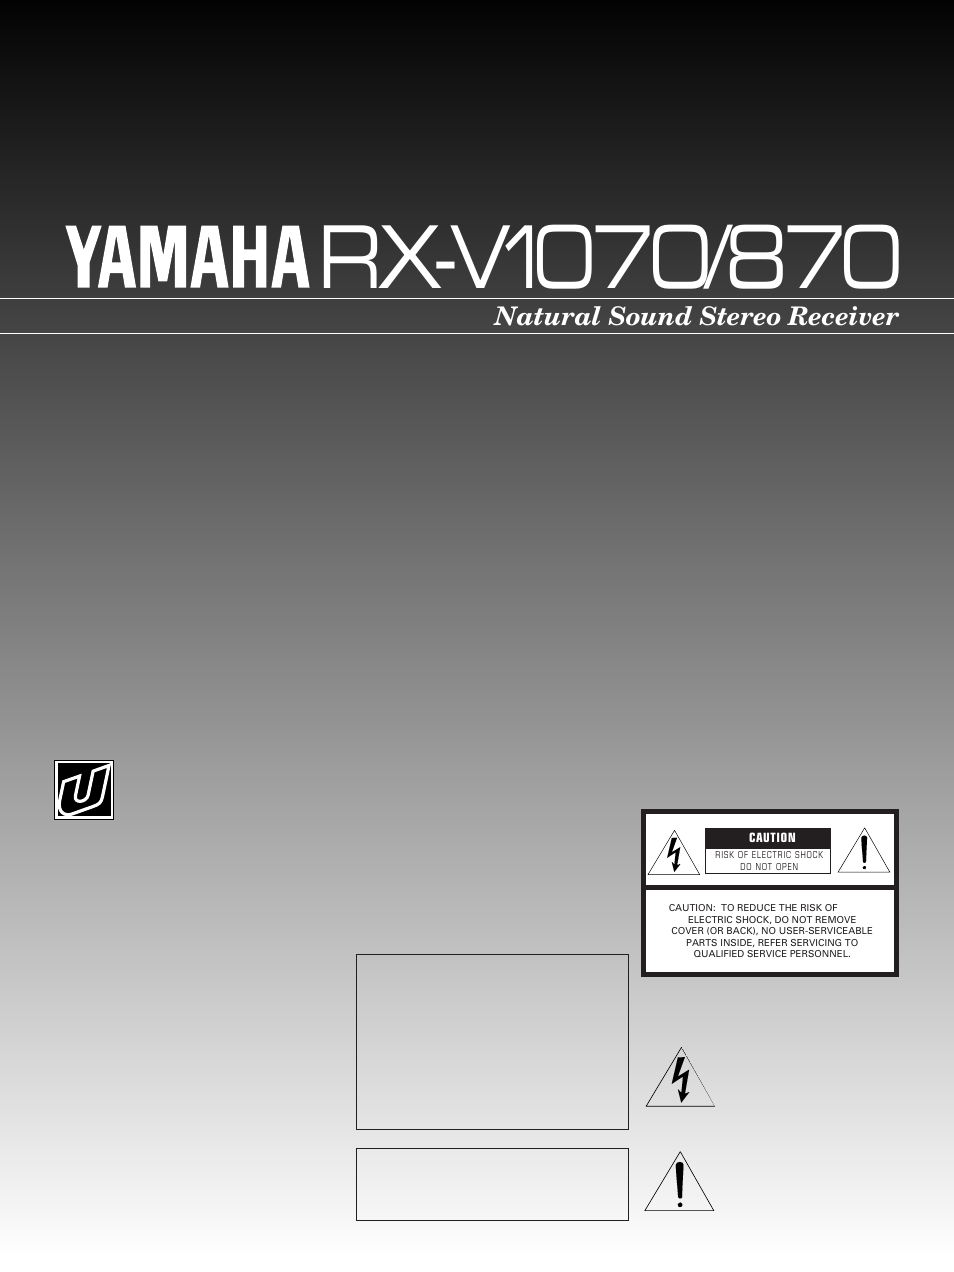 Yamaha RX-V1070 User Manual | 31 pages | Also for: RX-V1870